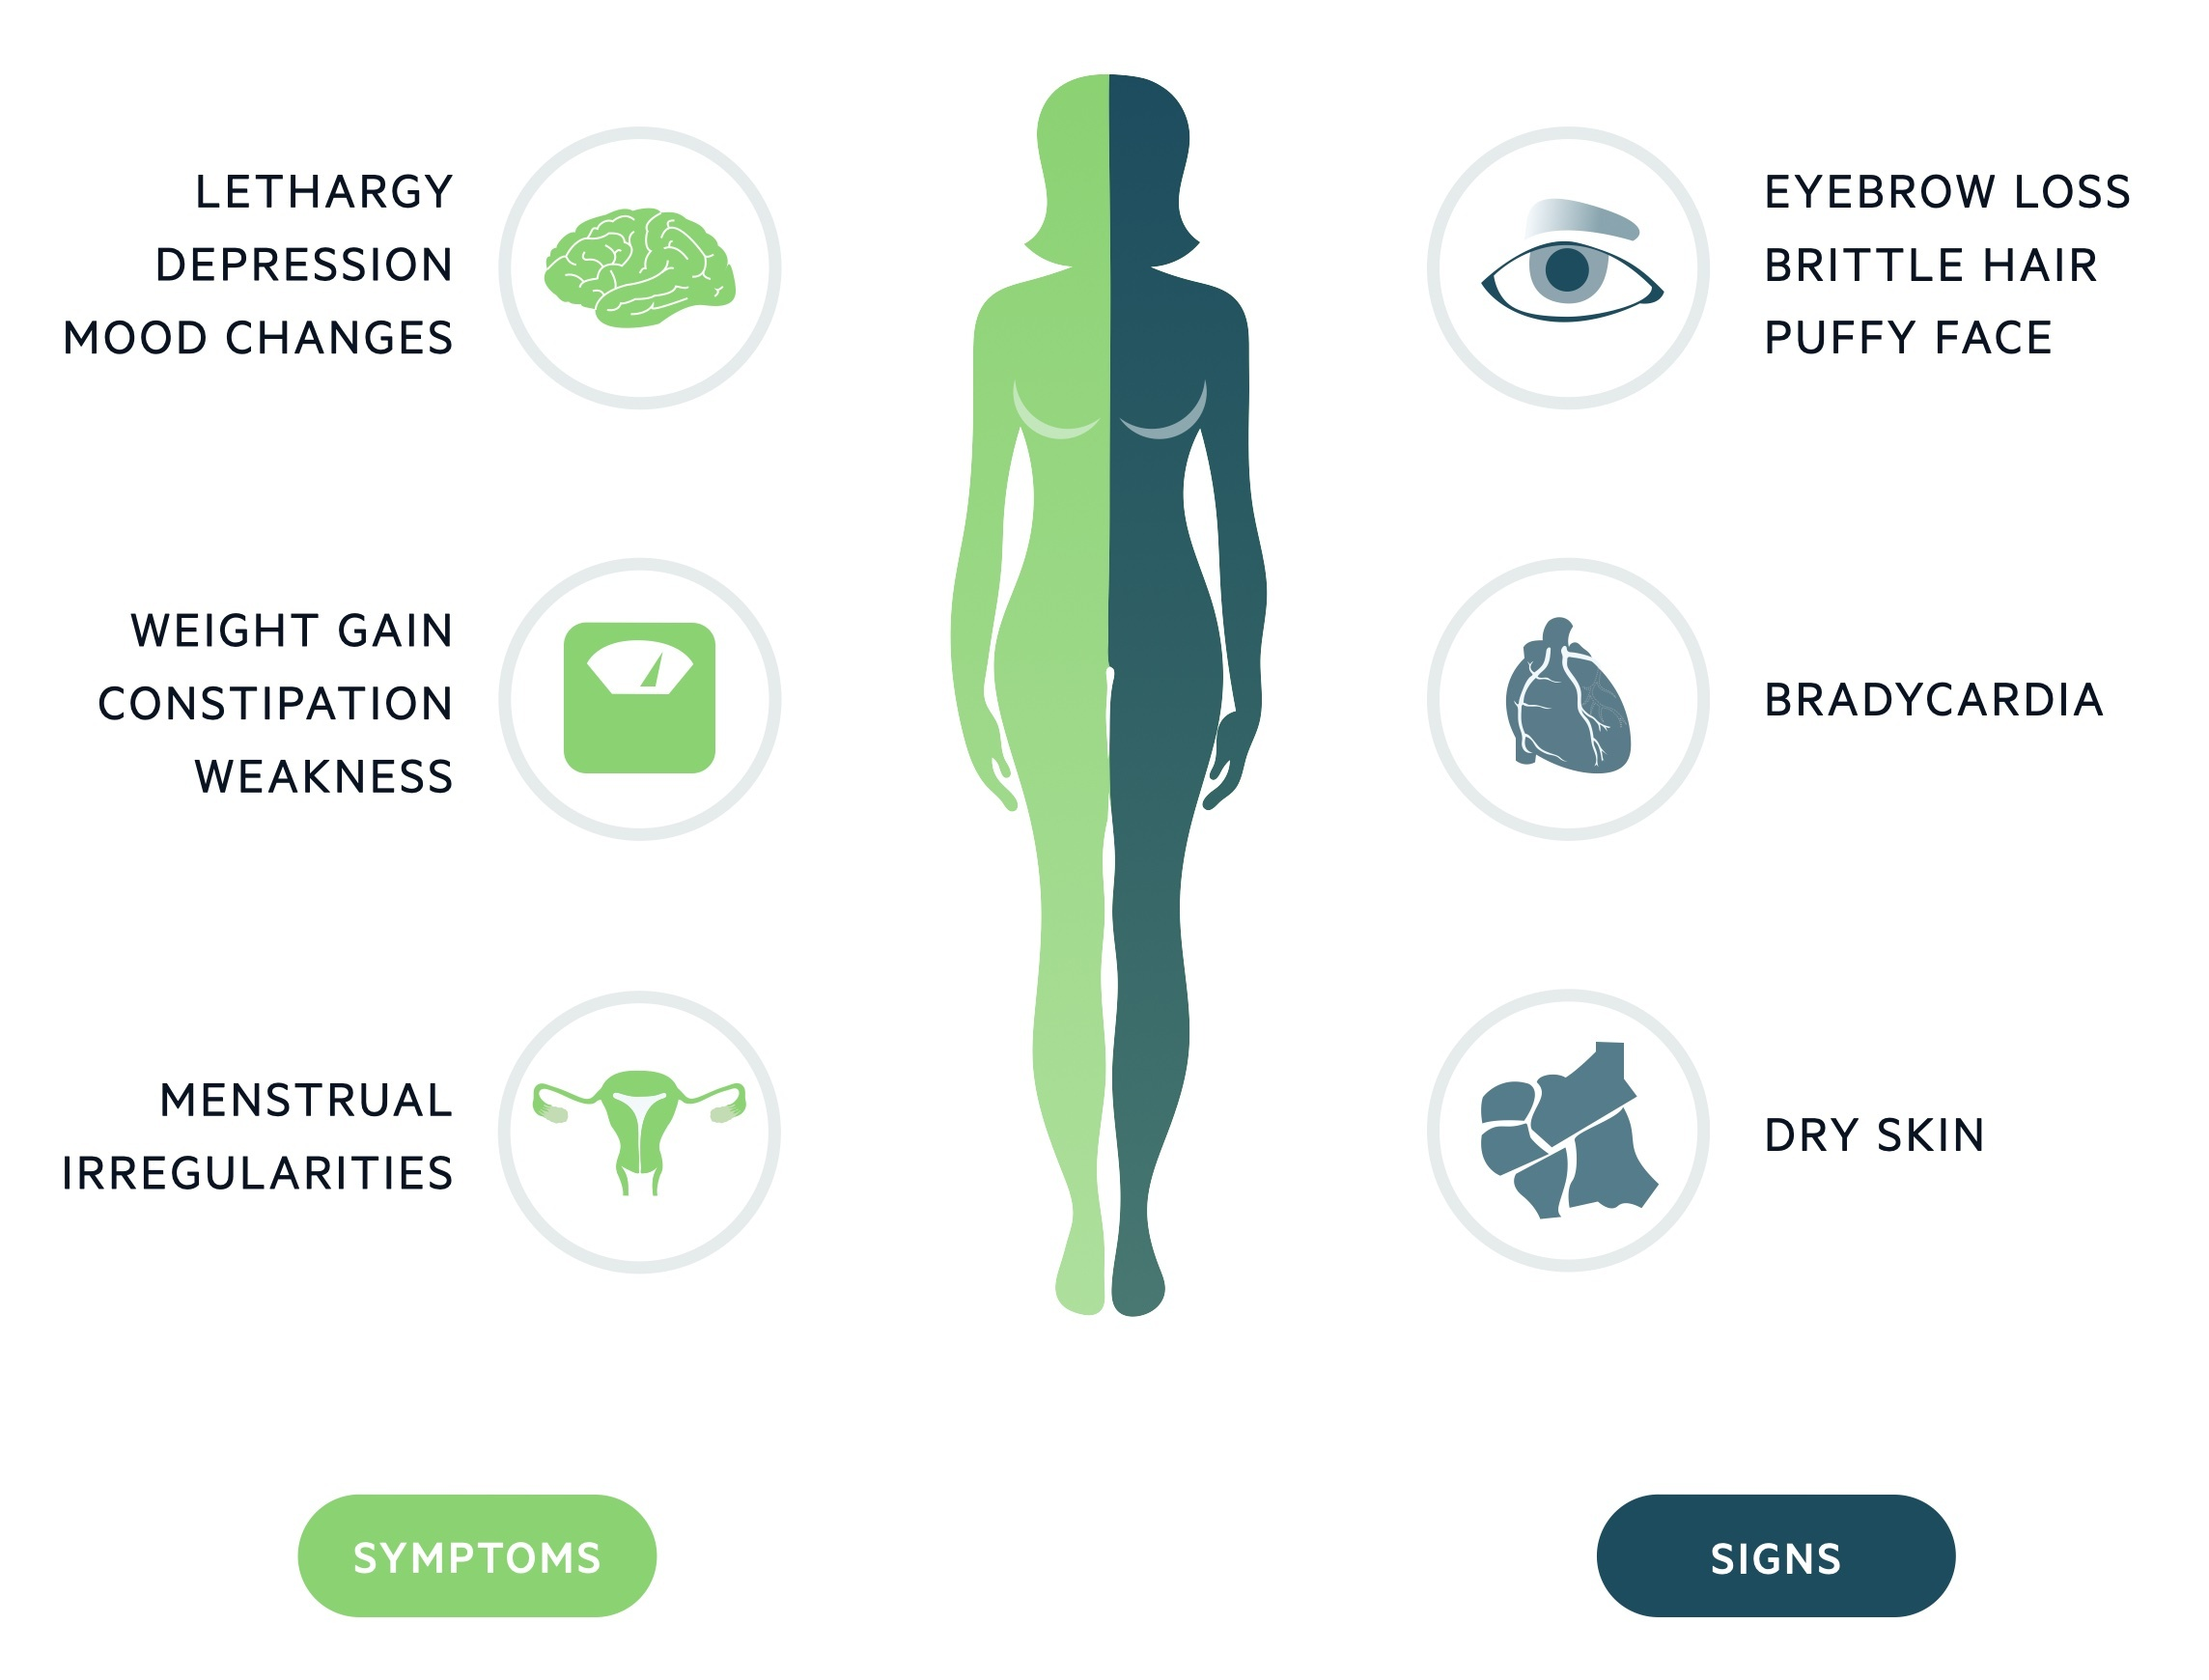 Clinical features of hypothyroidism